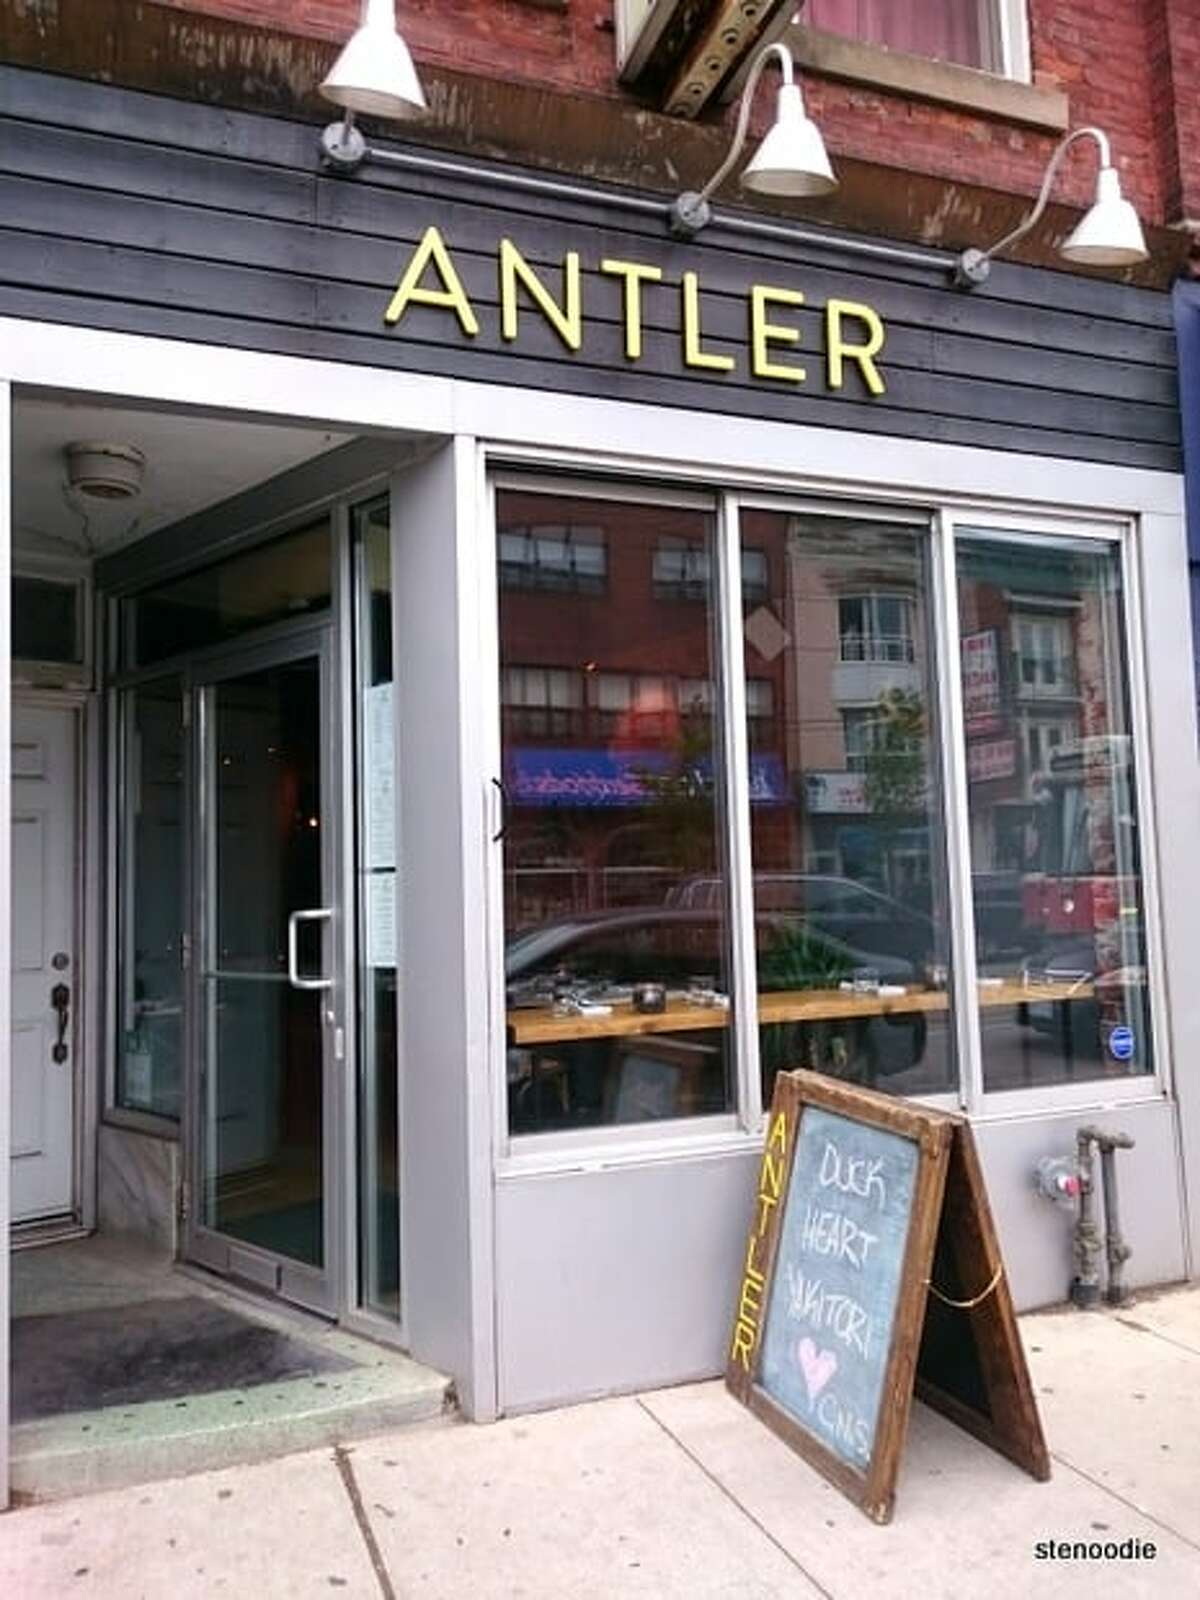 Yelp photos show Toronto Antler Kitchen & Bar. The game-focused restaurant was the site of a recent protest during which co-owner and head chef Michael Hunter butchered a deer leg in front of vegan activists.